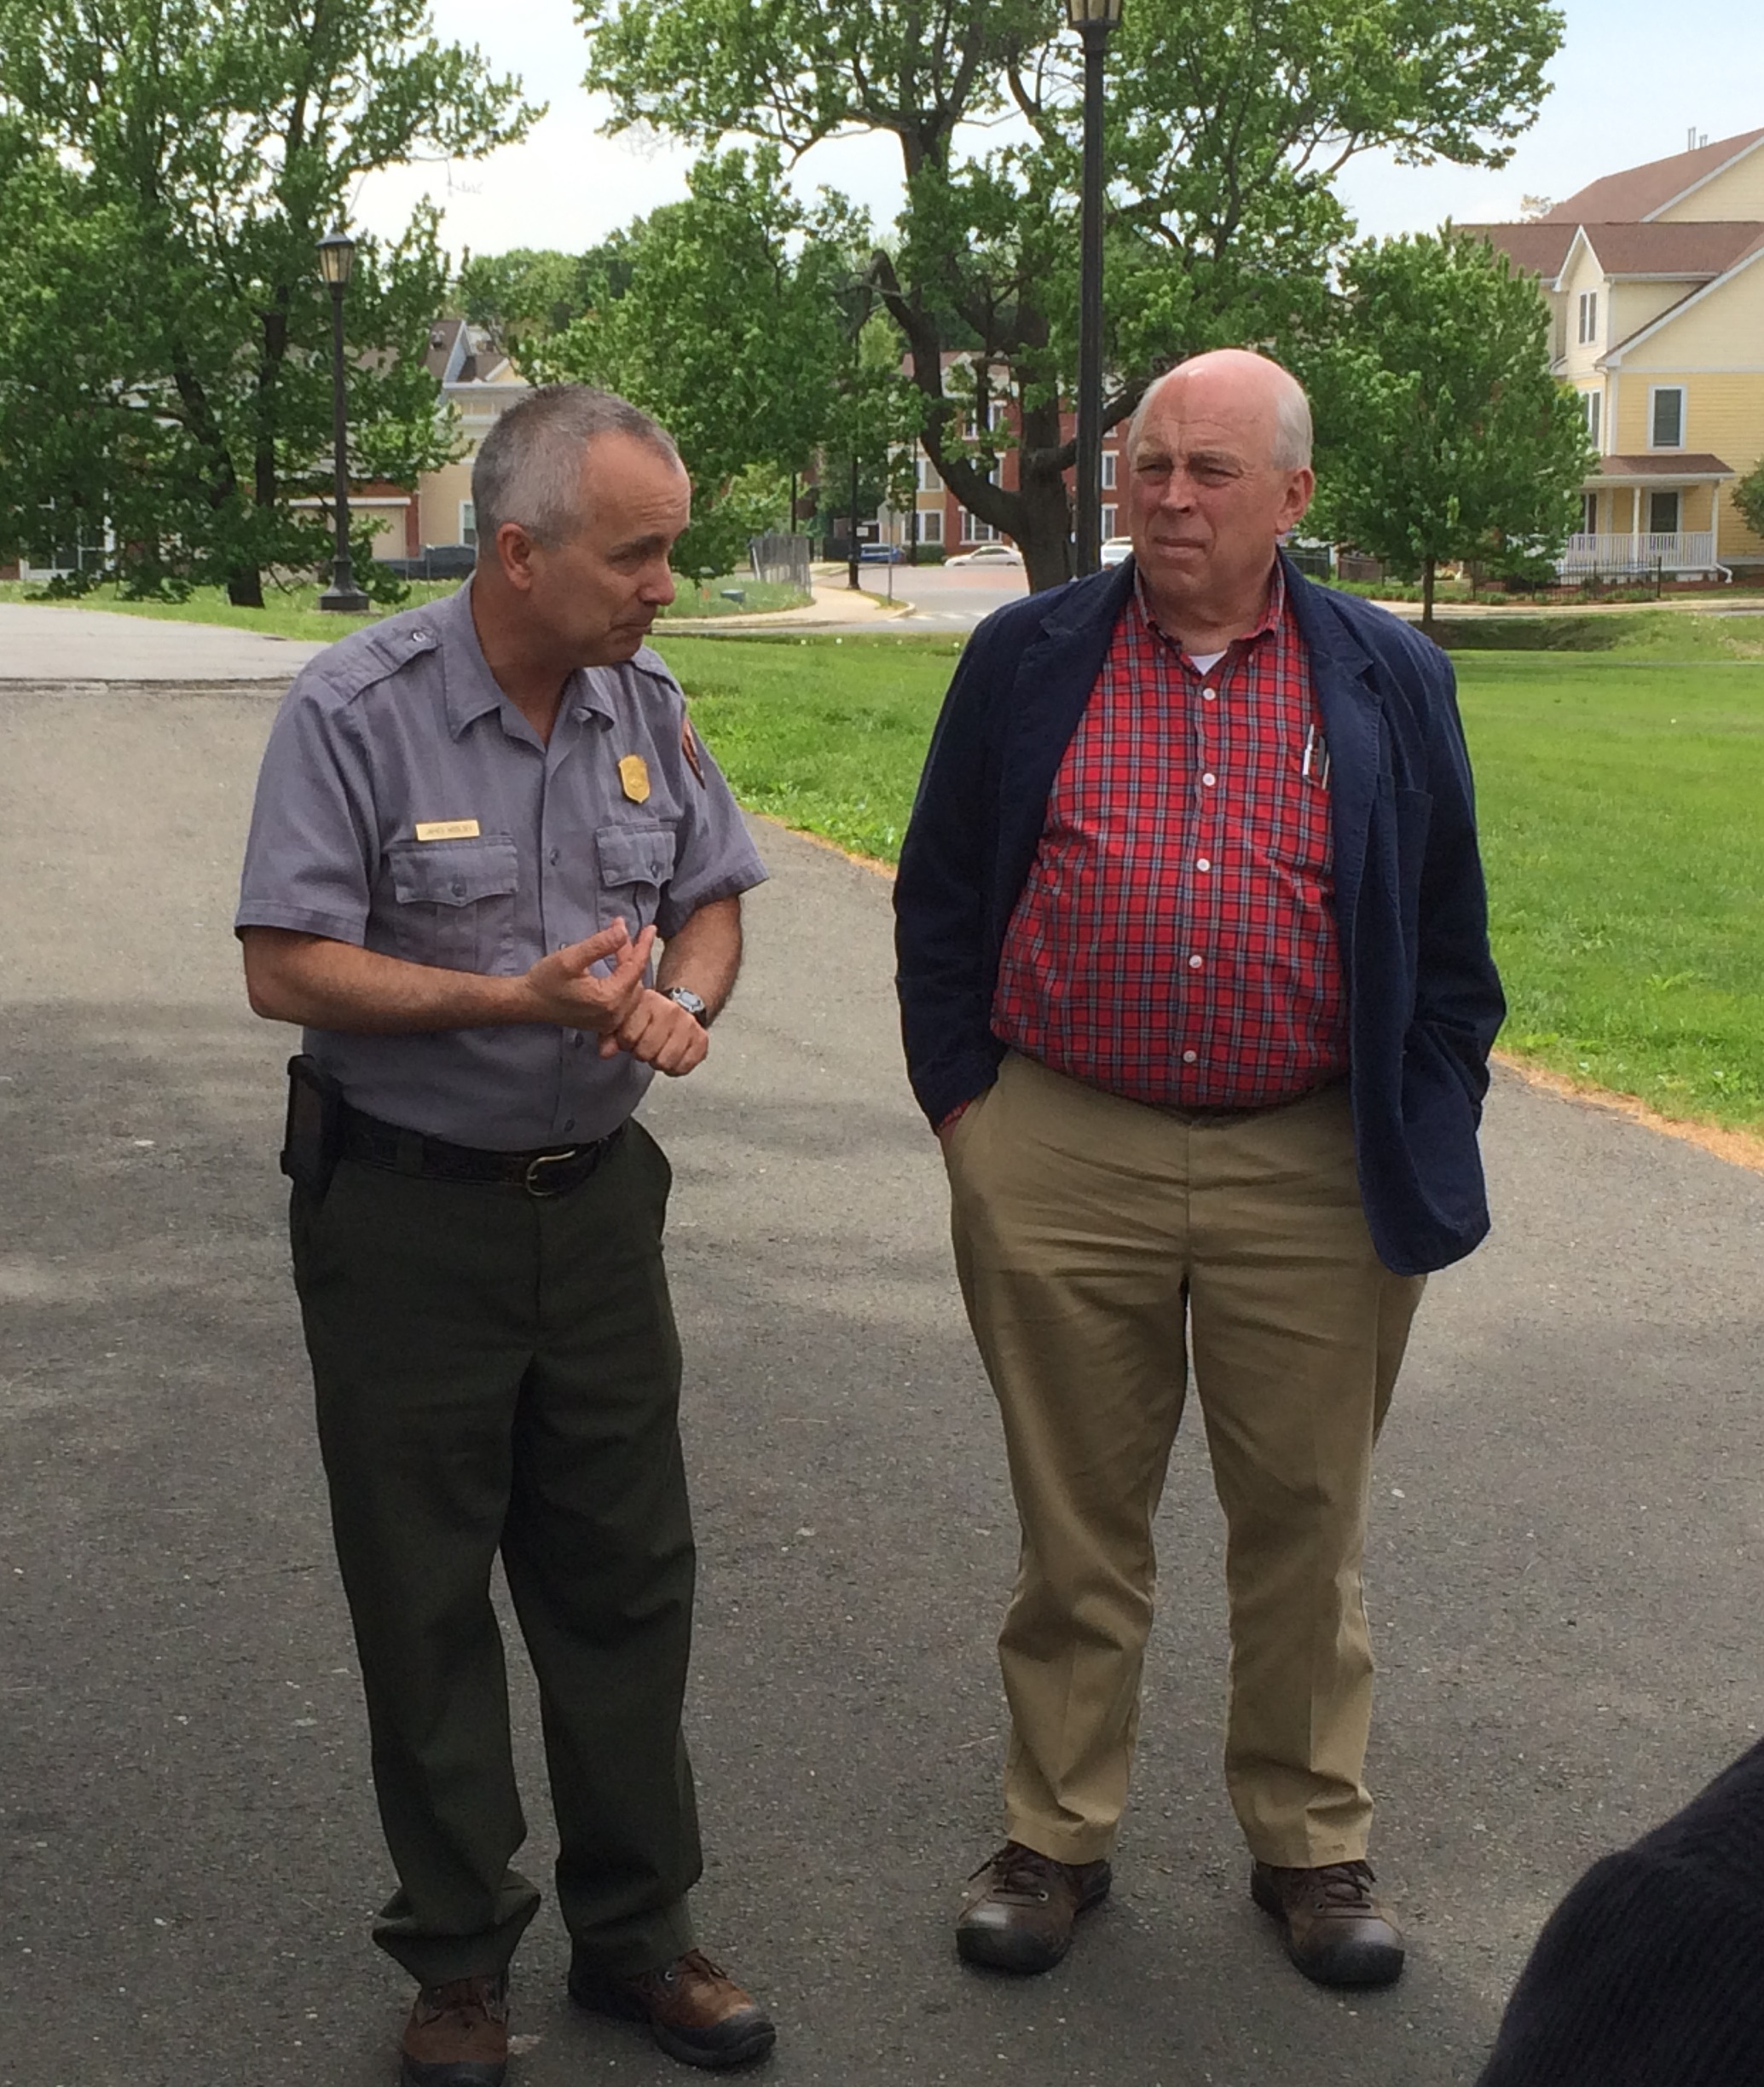 Two of our tour guides were James Woolsey (left) and Jack Hale (right).